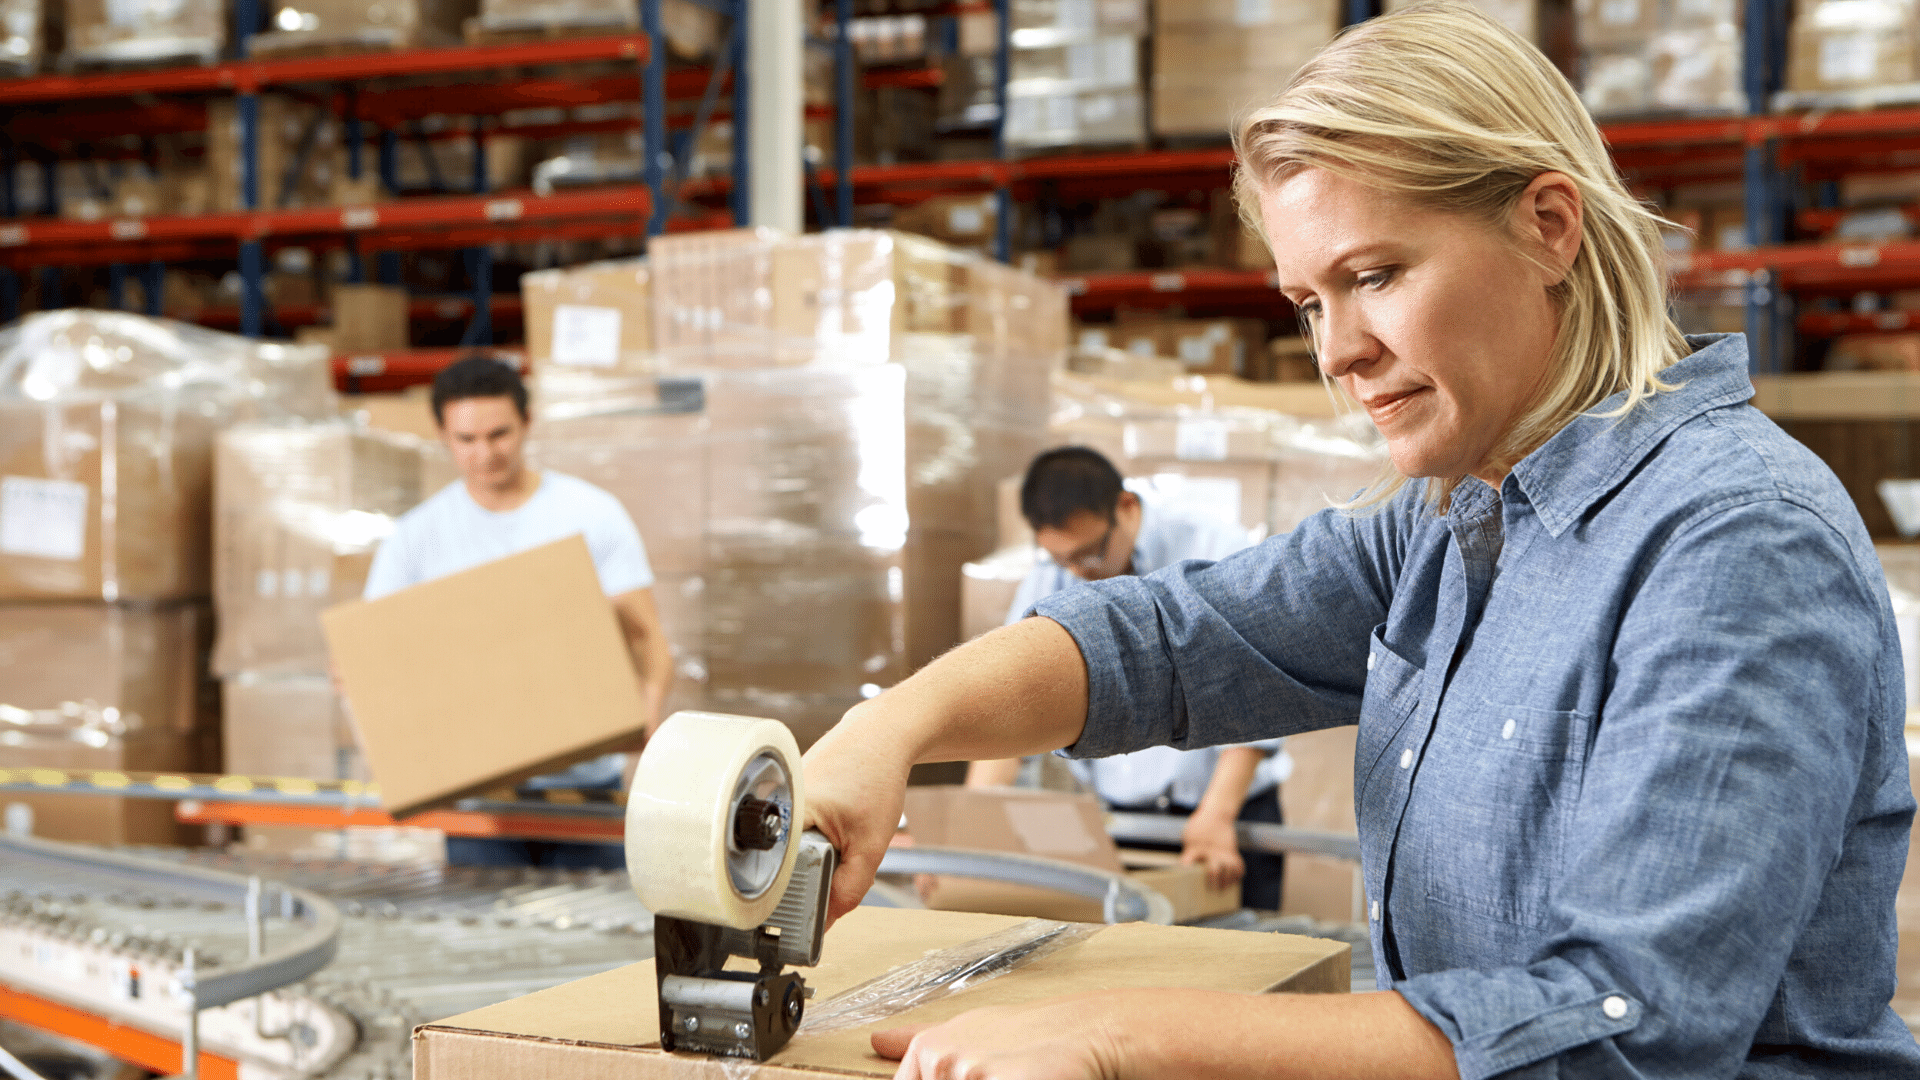 5 Ways Temporary Employees Can Help Your Business